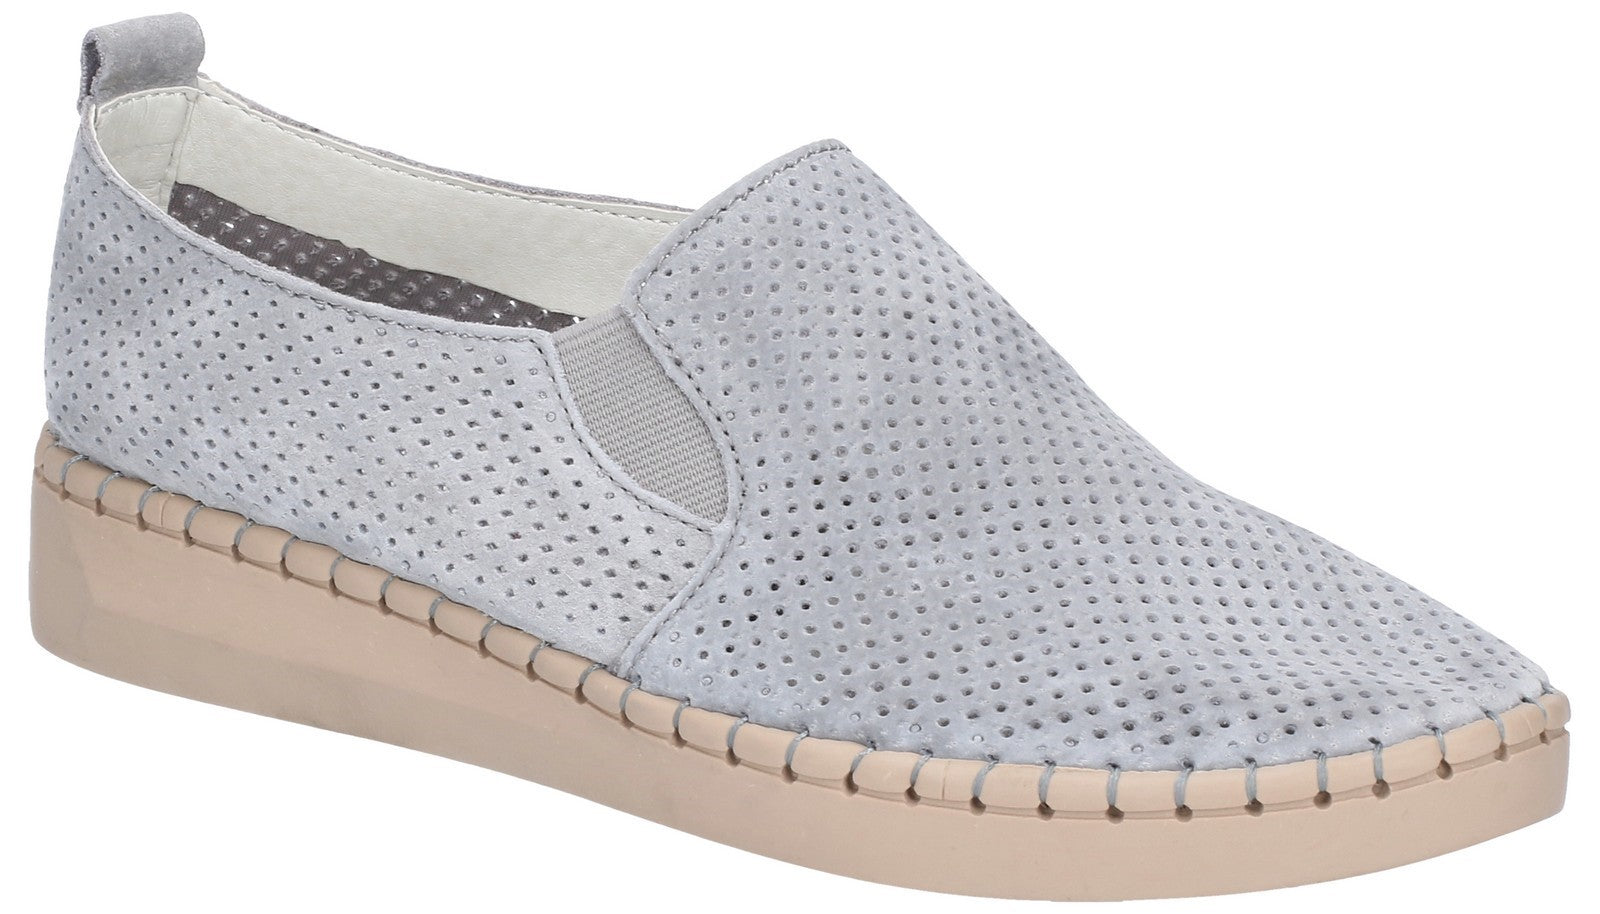 Fleet & Foster Women's Tulip Slip On Shoe Blue 28262-47470